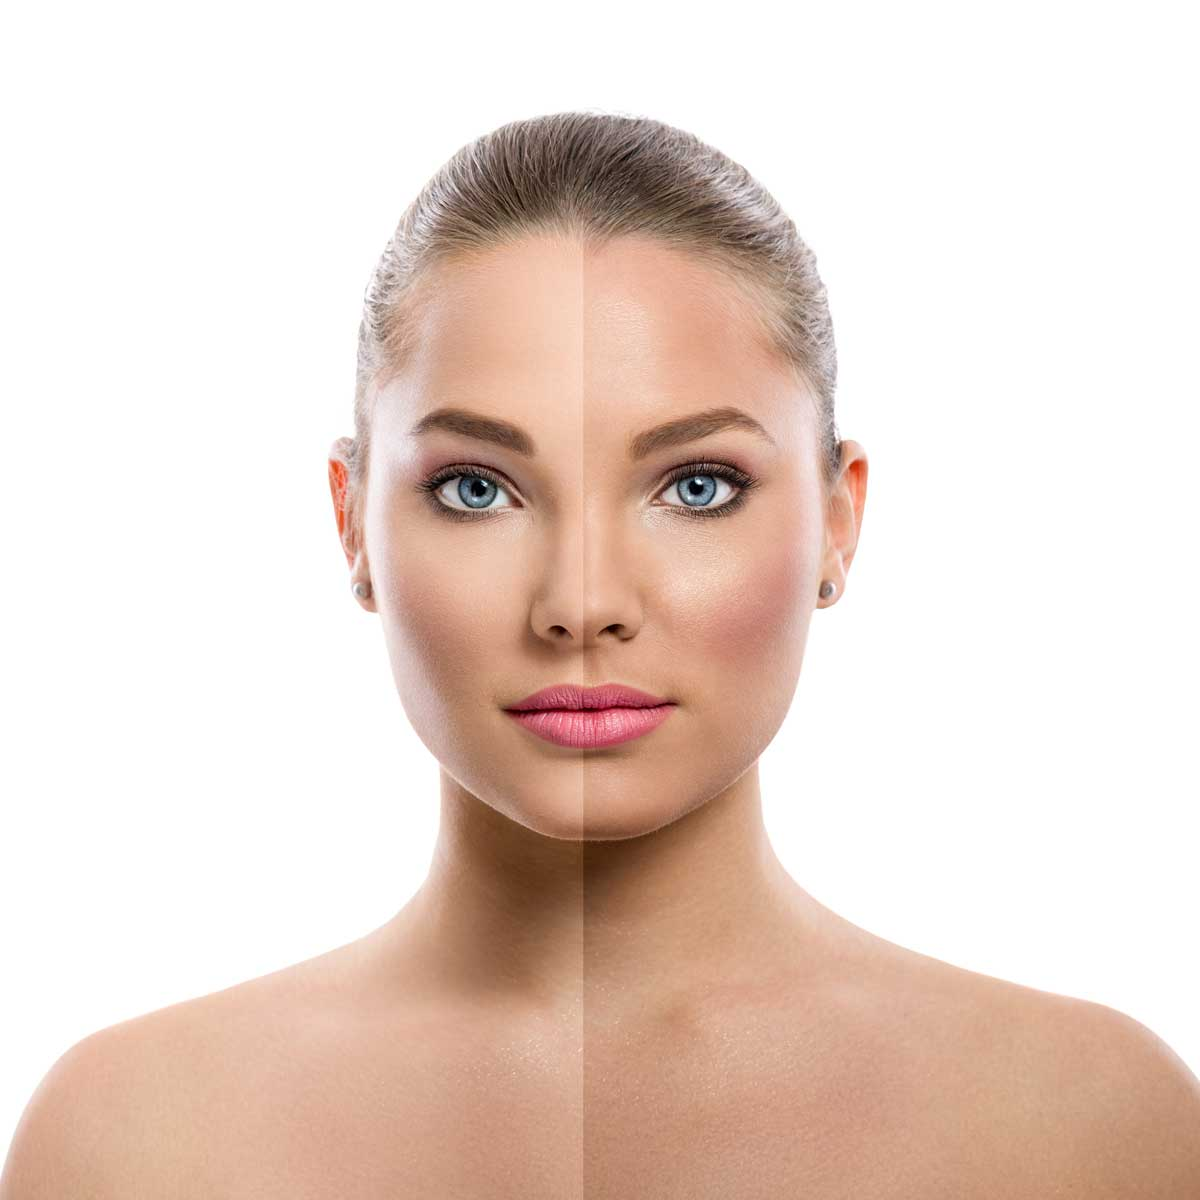 Face Treatments essex southend on sea body aesthetics chemical peel